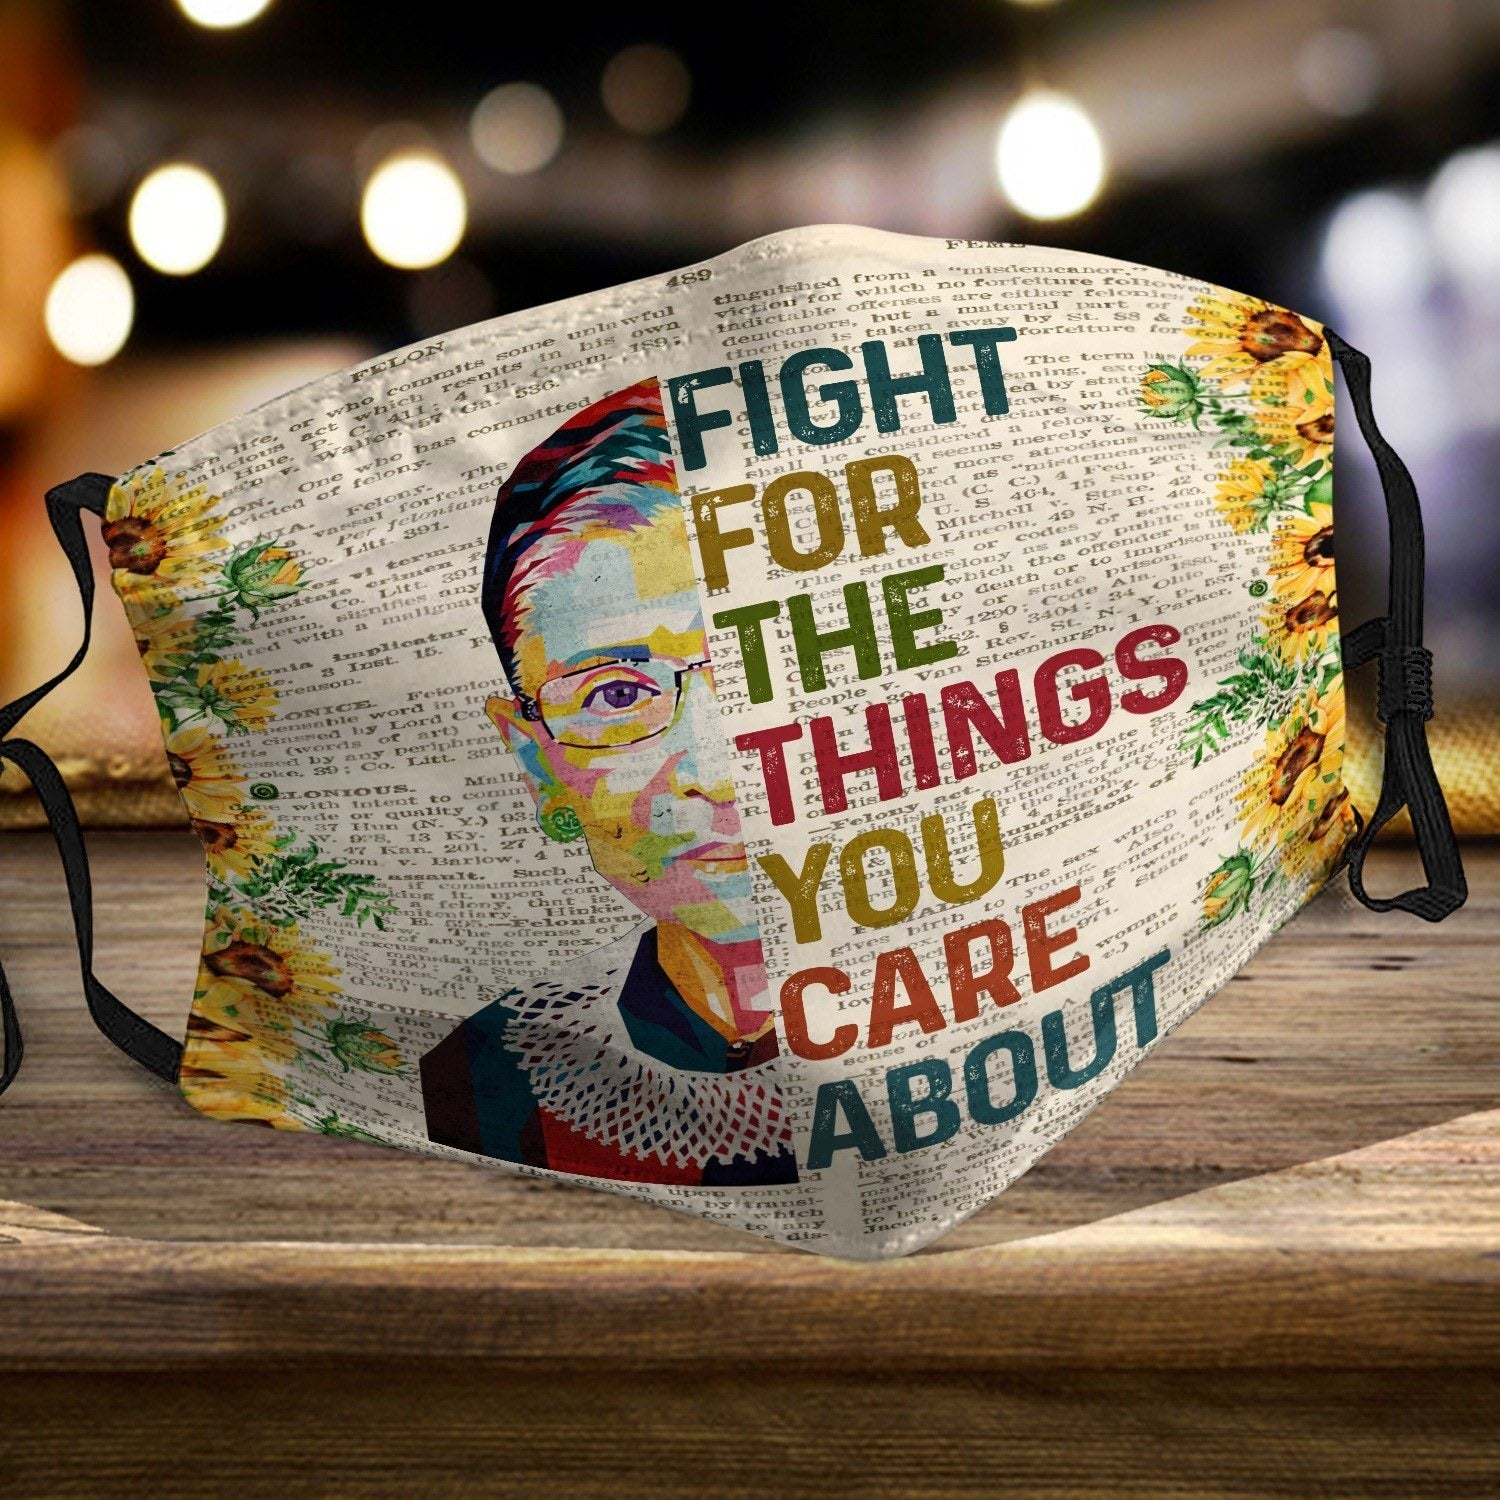 Fight for the things you care about - Ruth Bader Ginsburg Notorious RBG 2